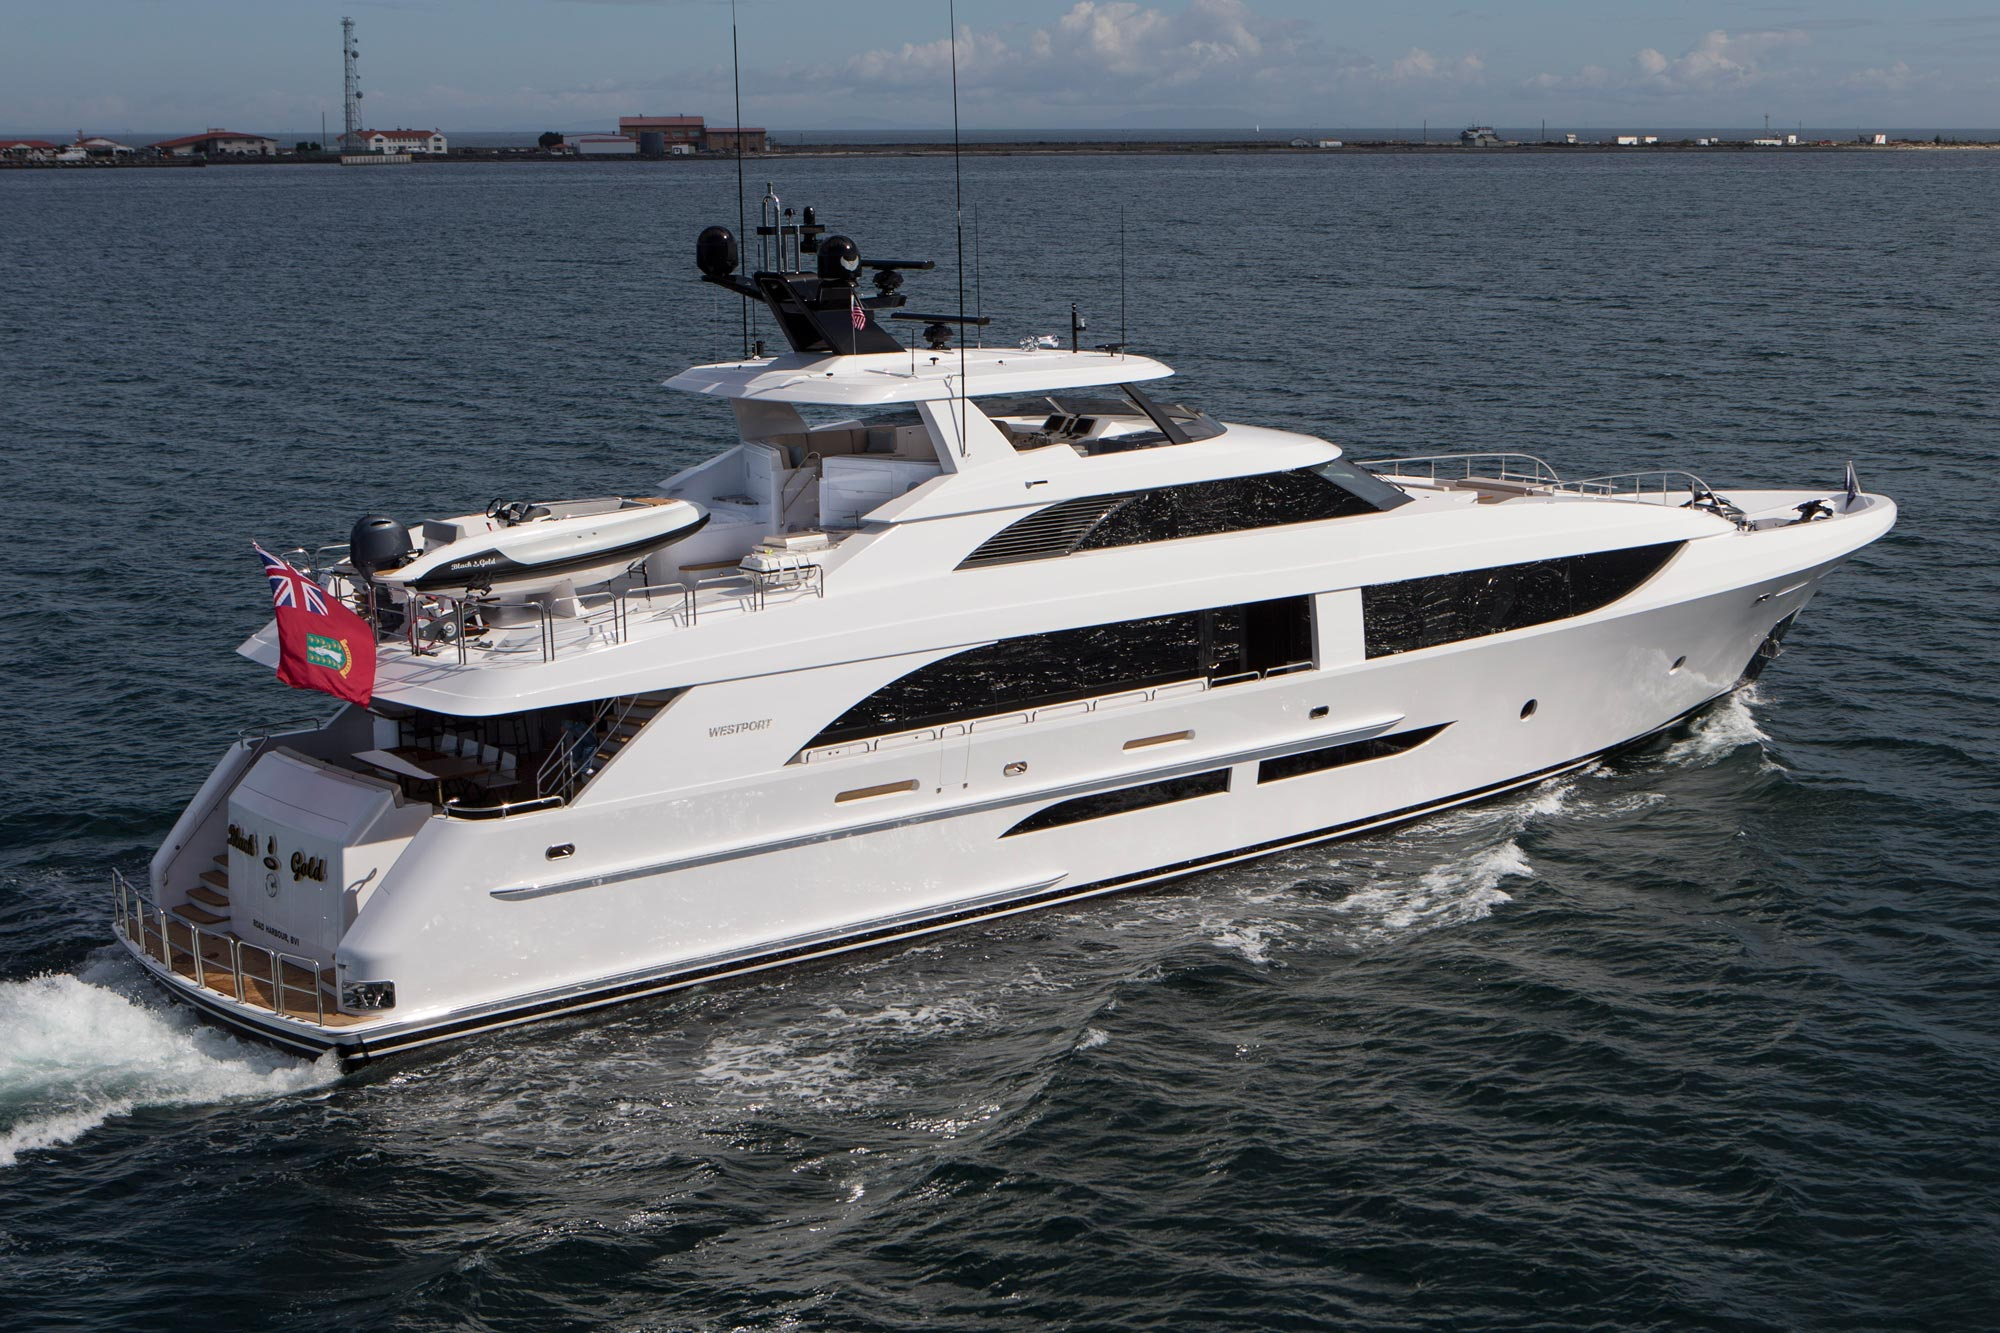 The new westport 125 continues to make waves 26 north yachts for The westport